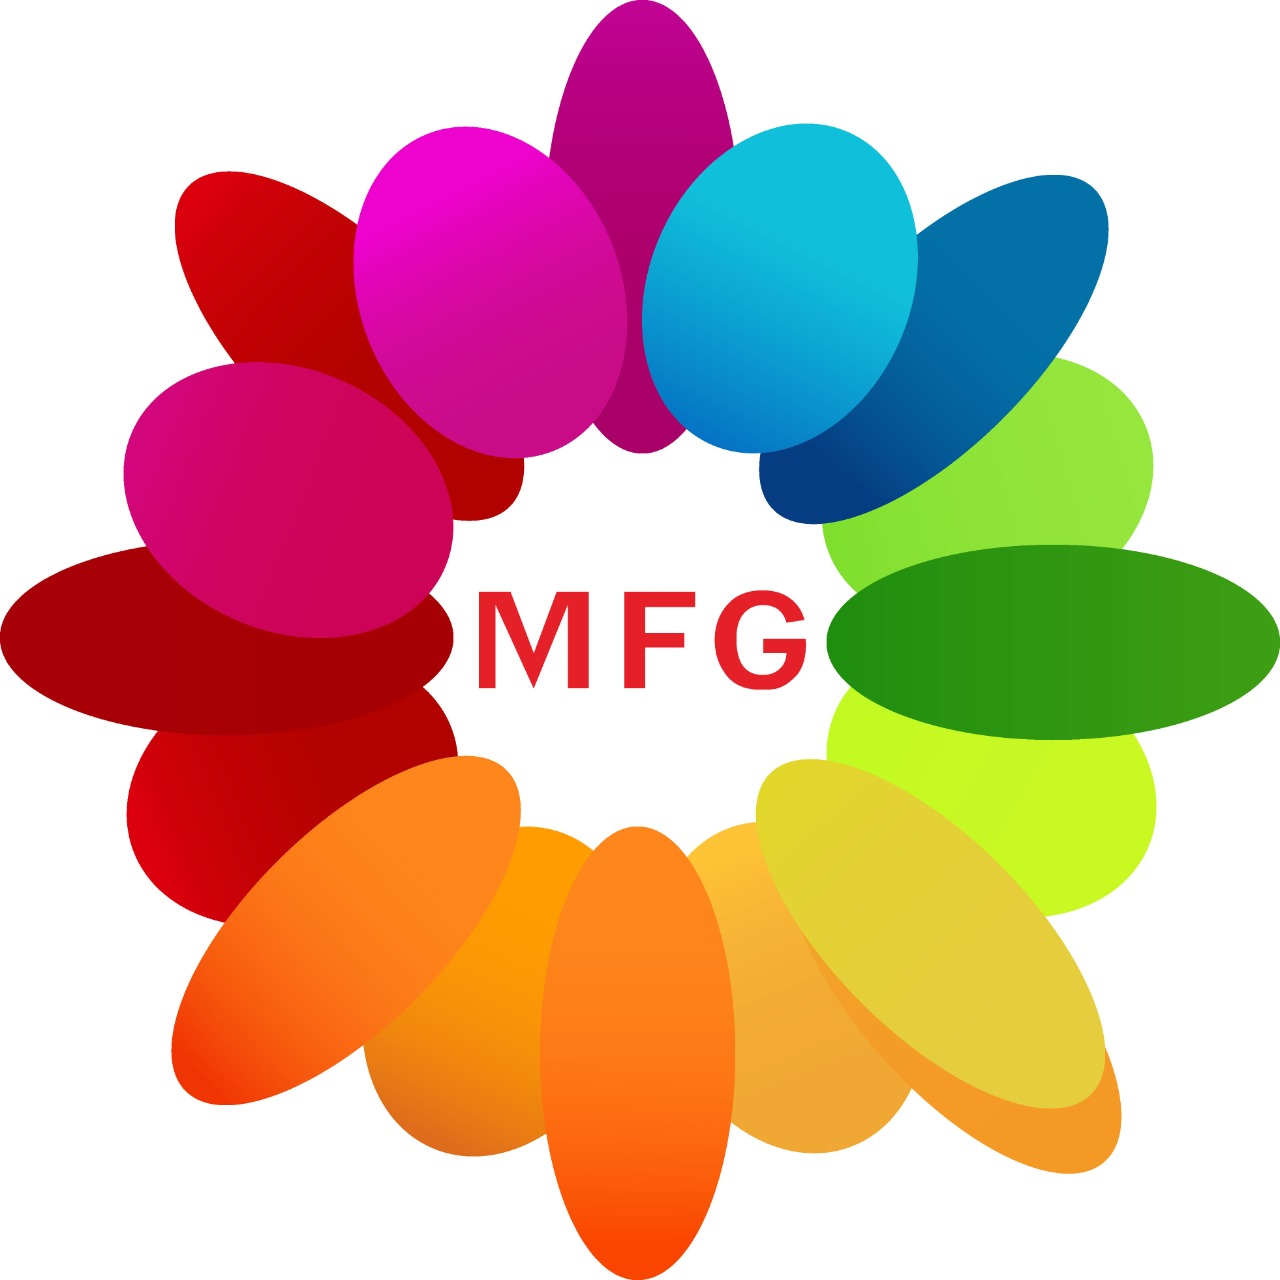 12 red roses with red carnations arranged in glass vase with 1 pound German chocolate cake